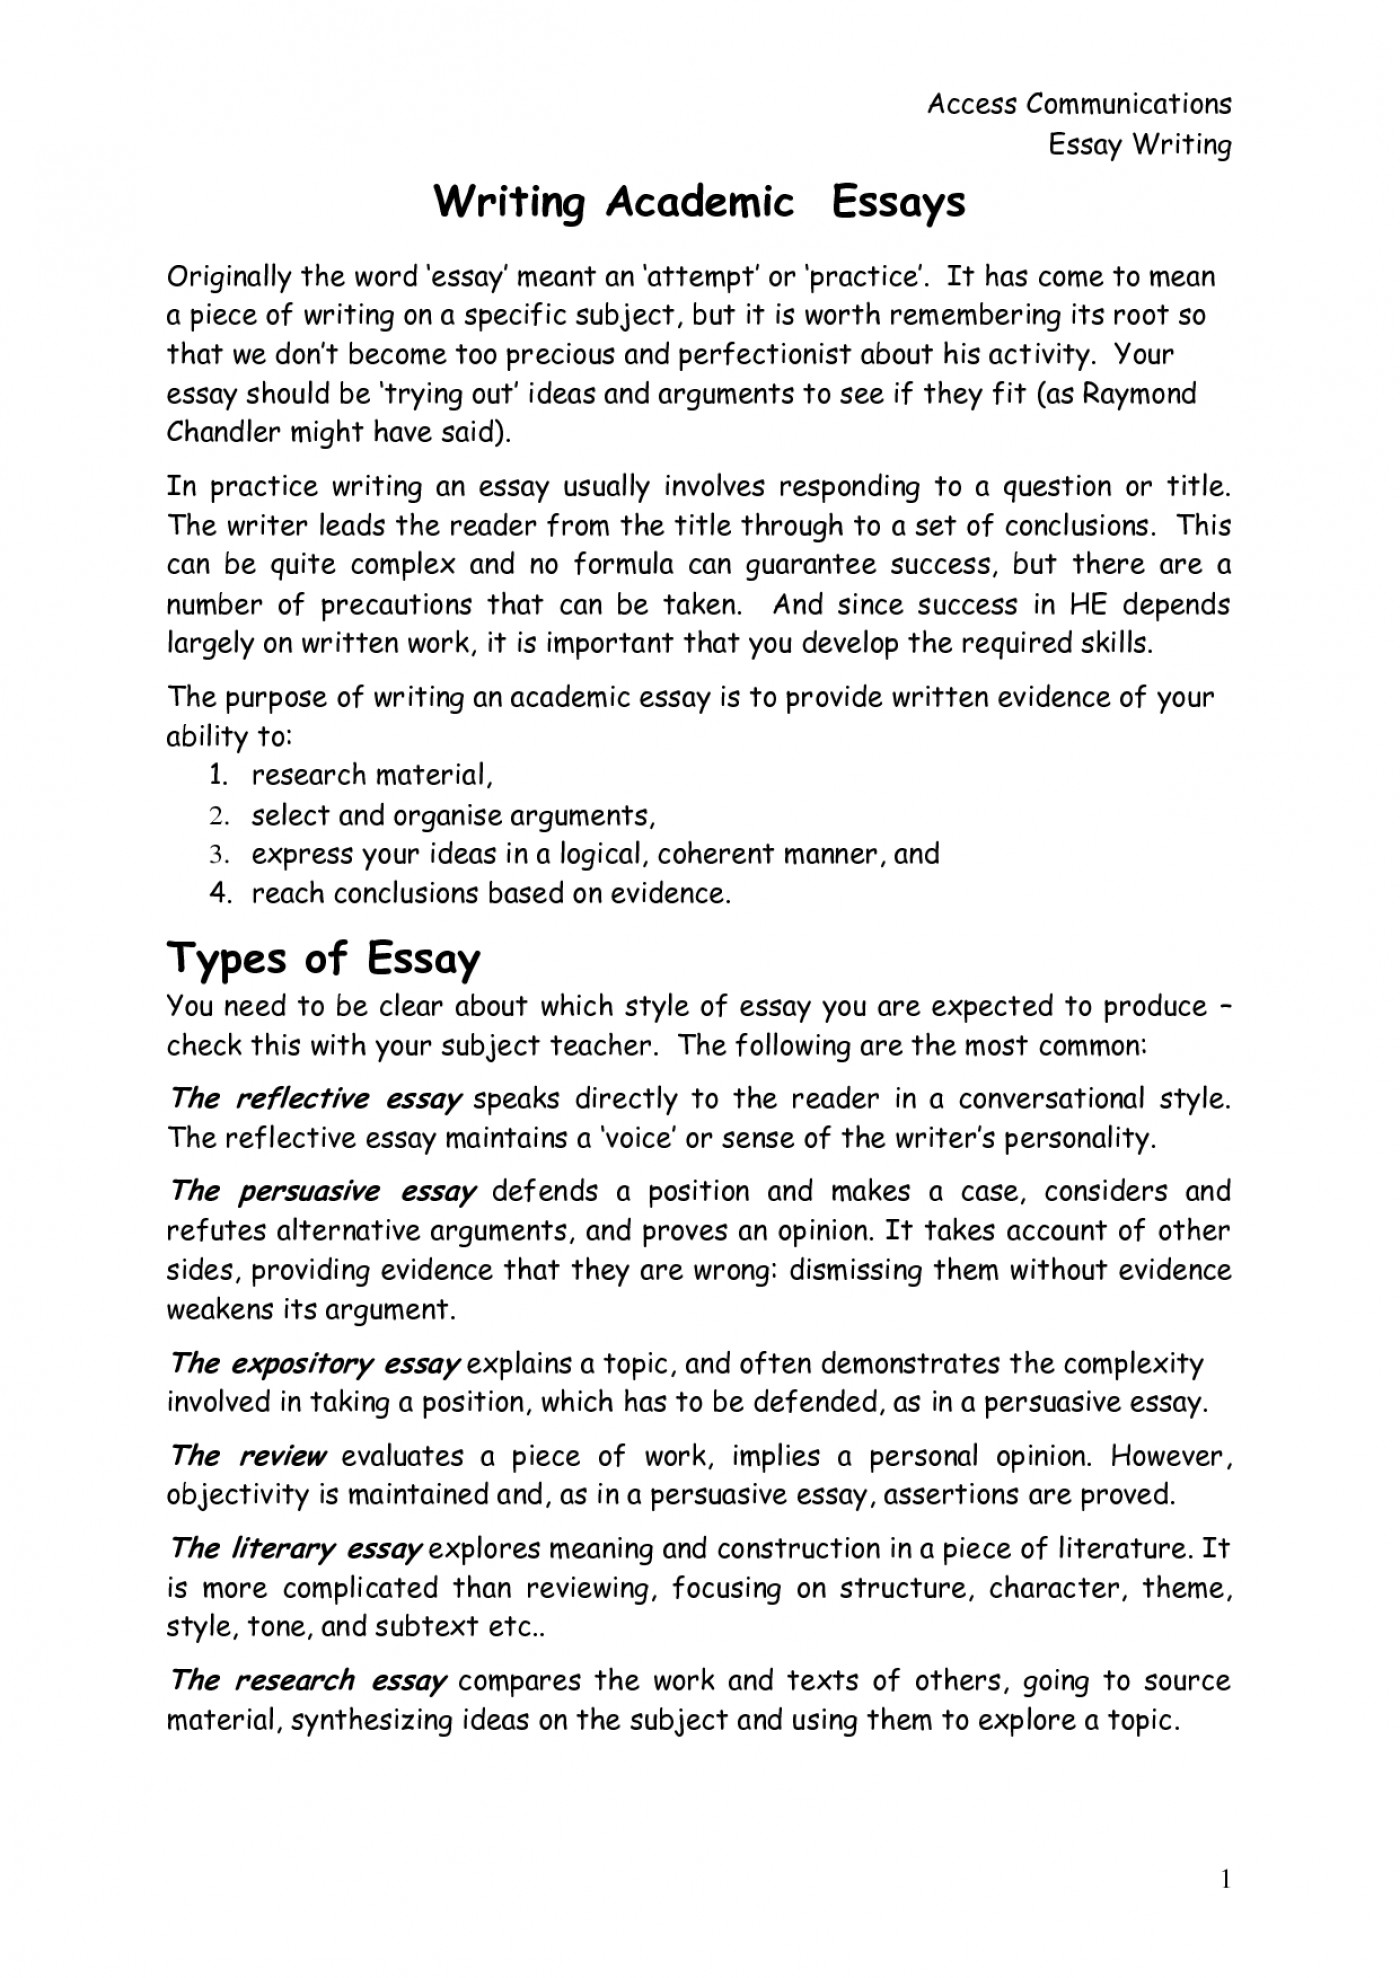 017 Essay Example Write For Me Amazing College My Cheap Uk Discount Code 1400